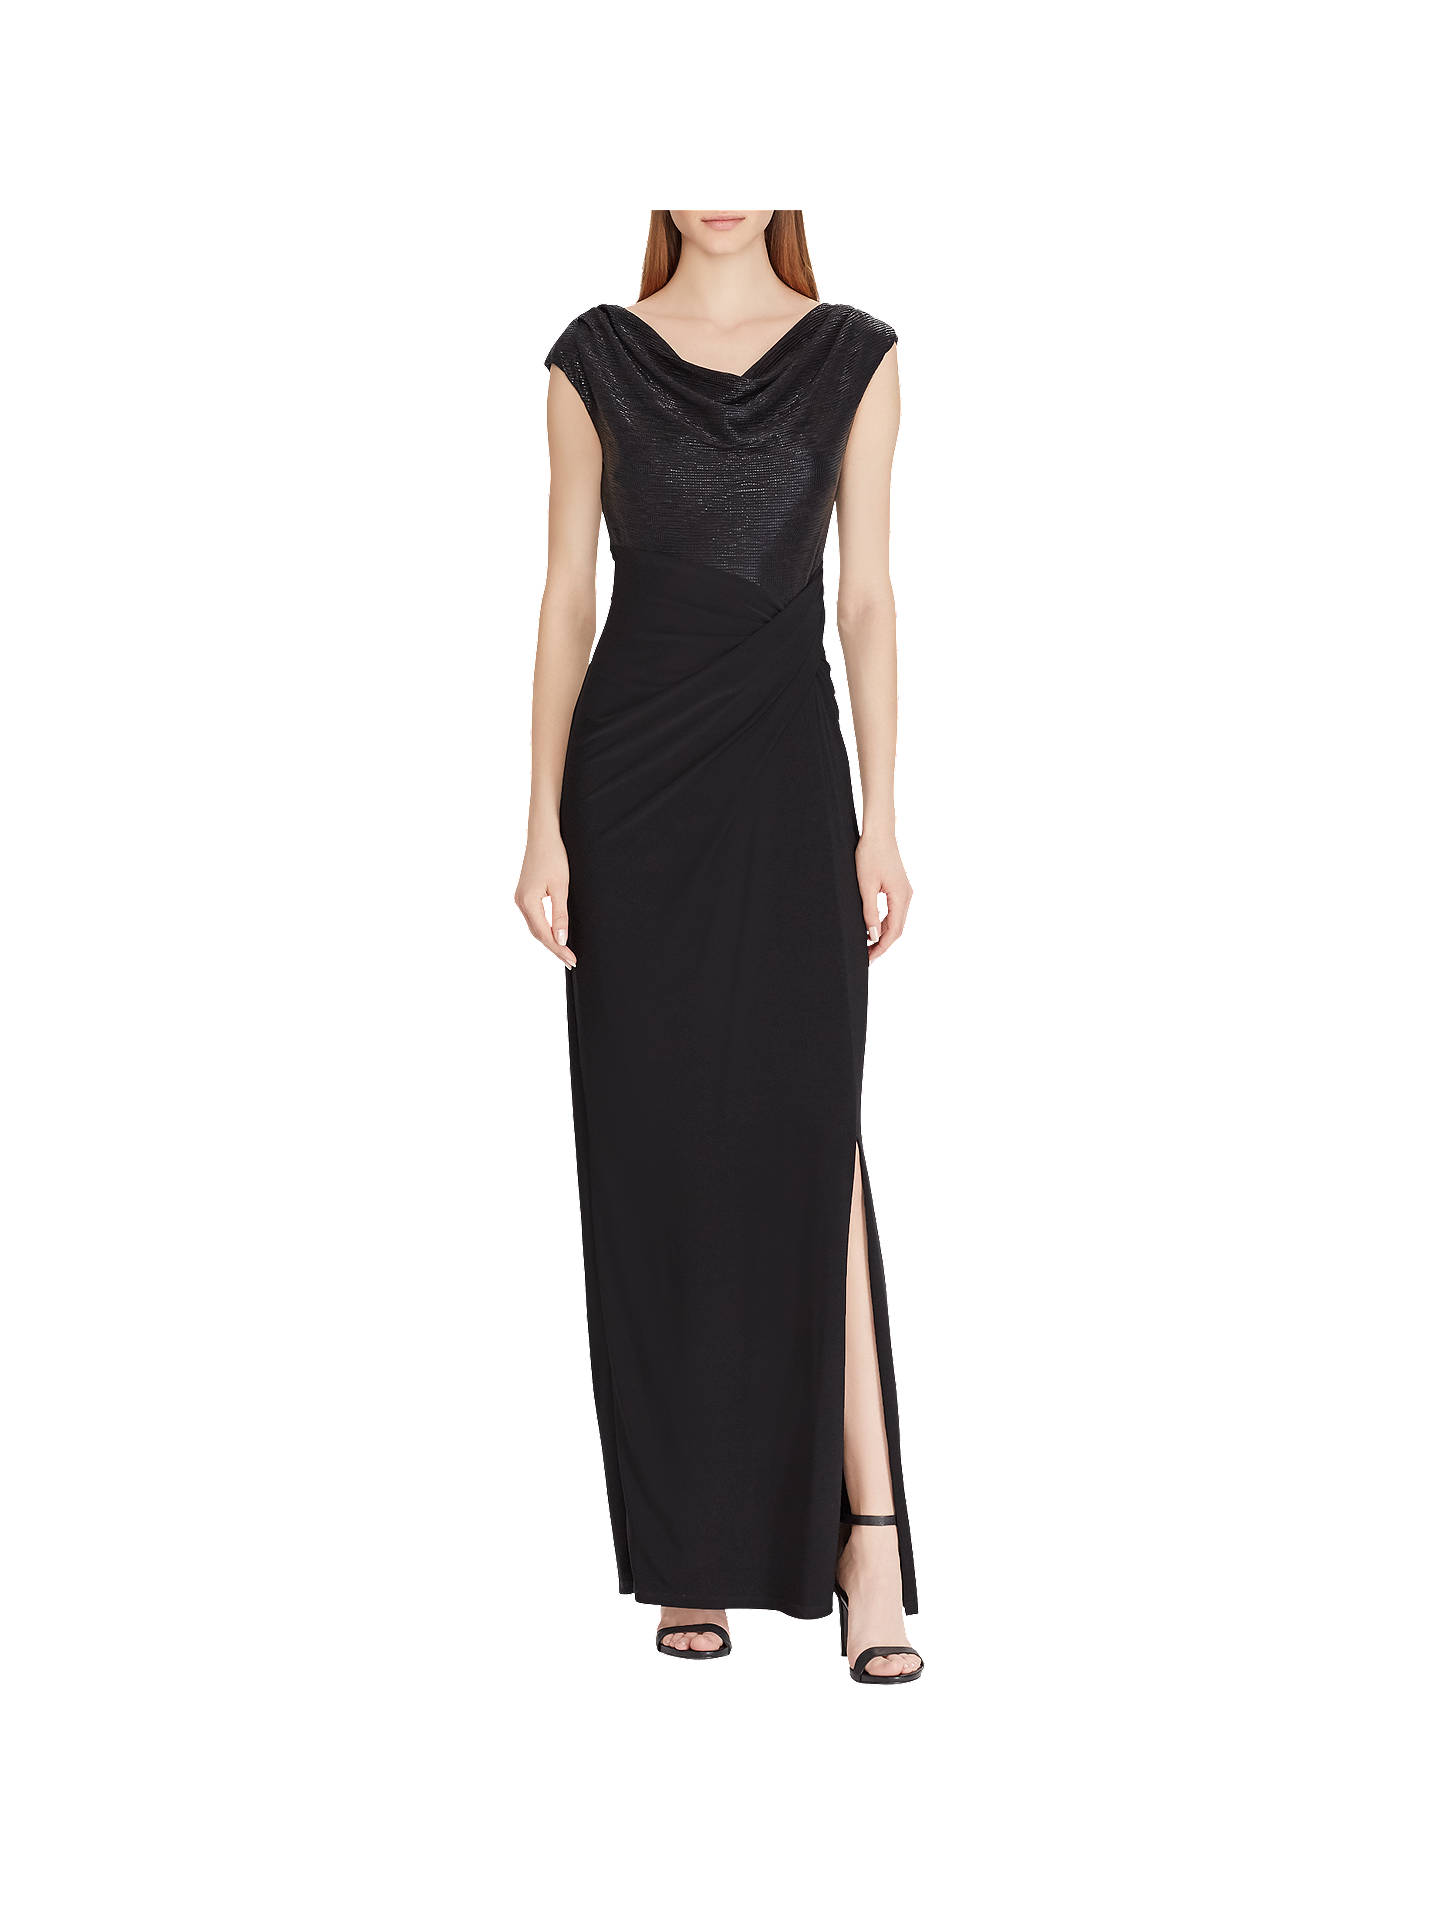 f8c92d1b Buy Lauren Ralph Lauren Metallic Cap Sleeve Dress, Black, 10 Online at  johnlewis.